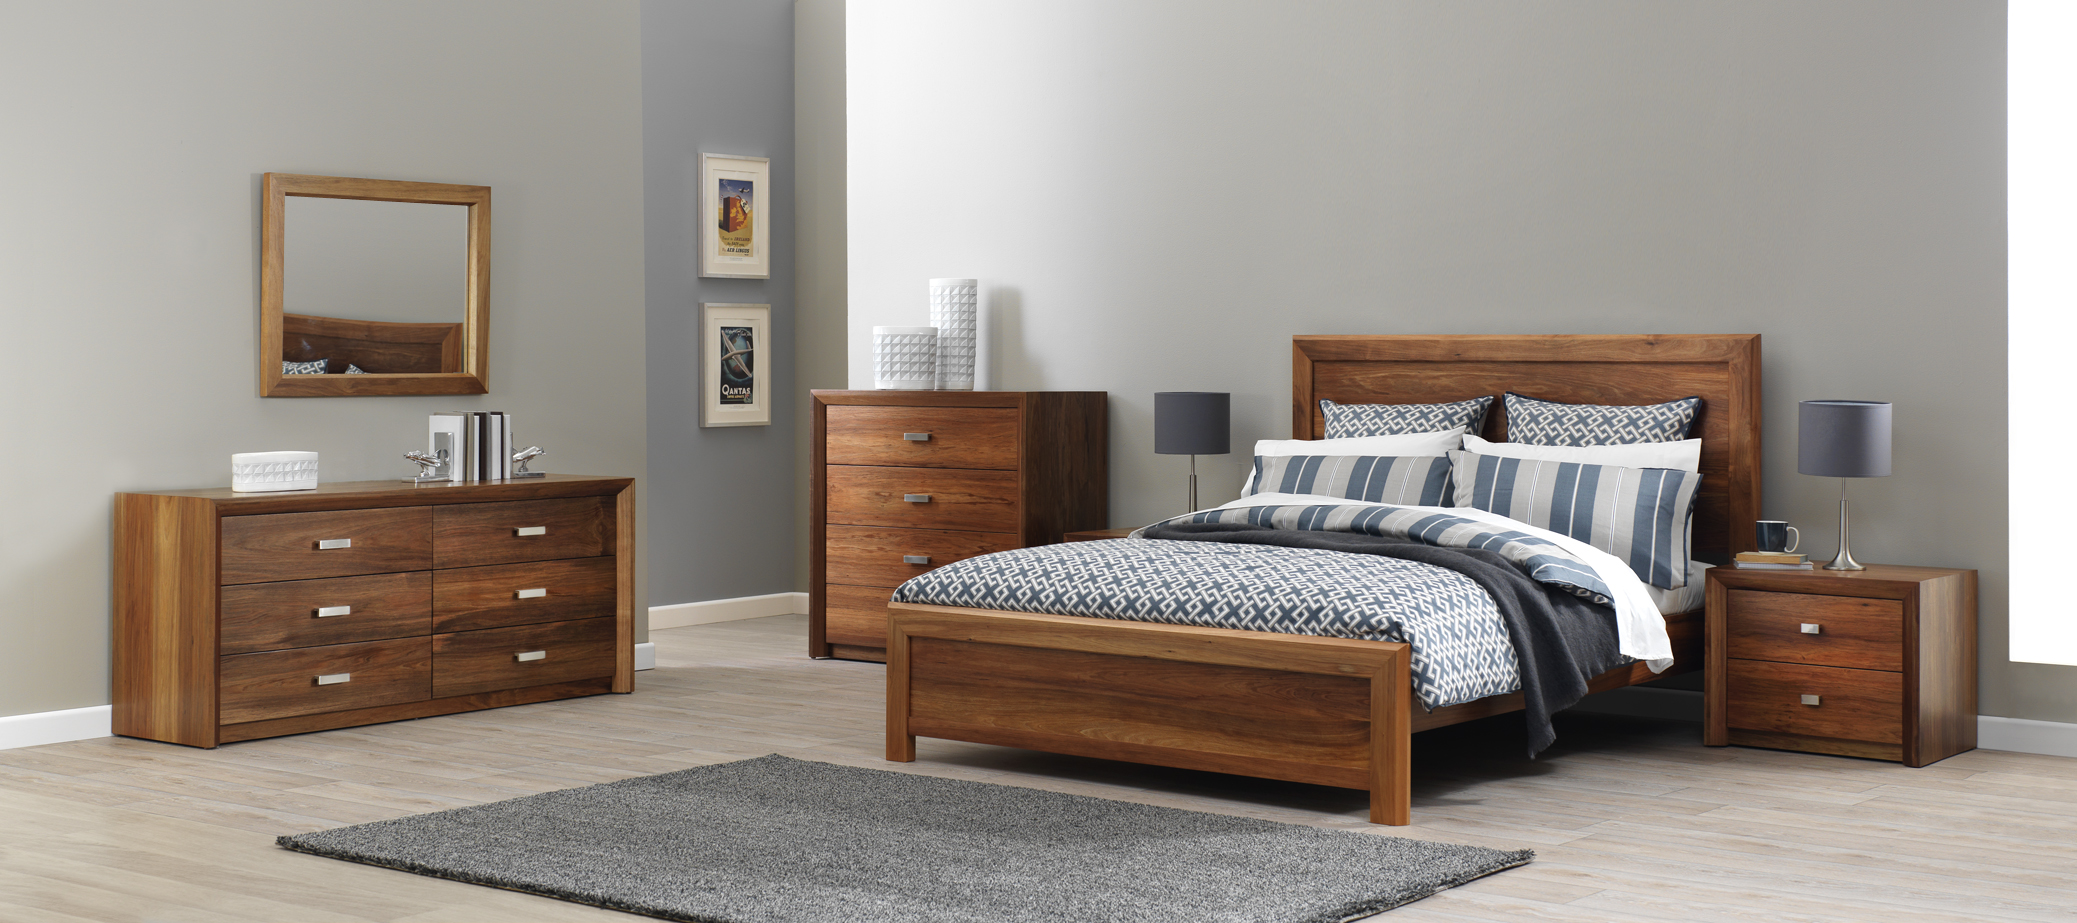 Photograph of Astra Furniture Cobar bedroom range crafted from solid Tasmanian Blackwood